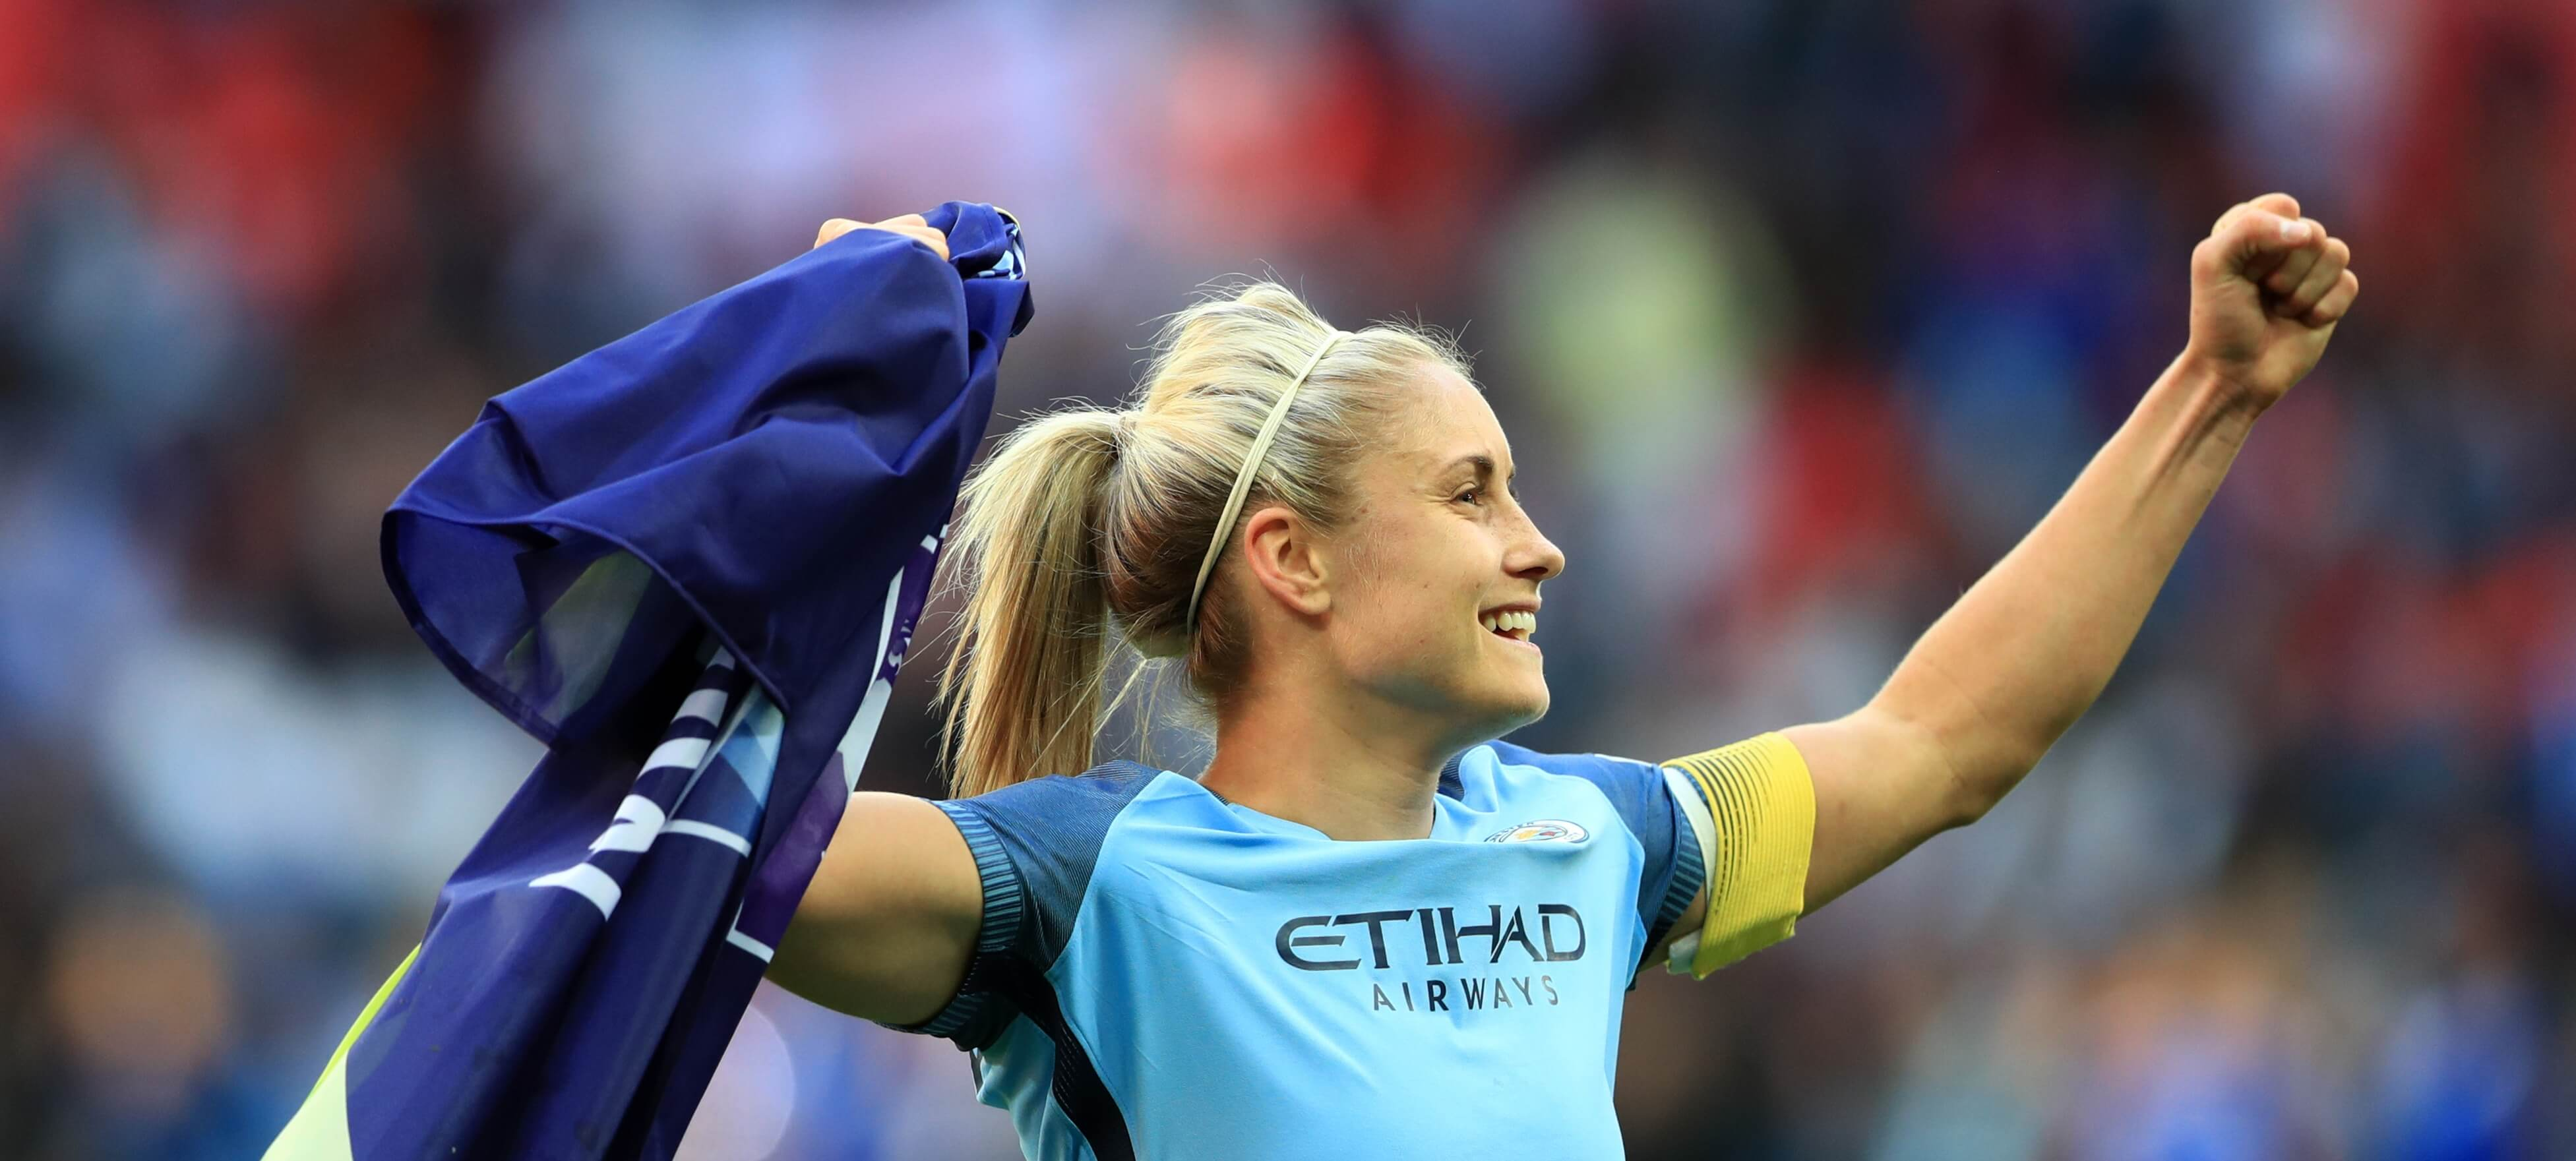 Why The Women's Manchester Derby Signals A Big Step In The Women's Game